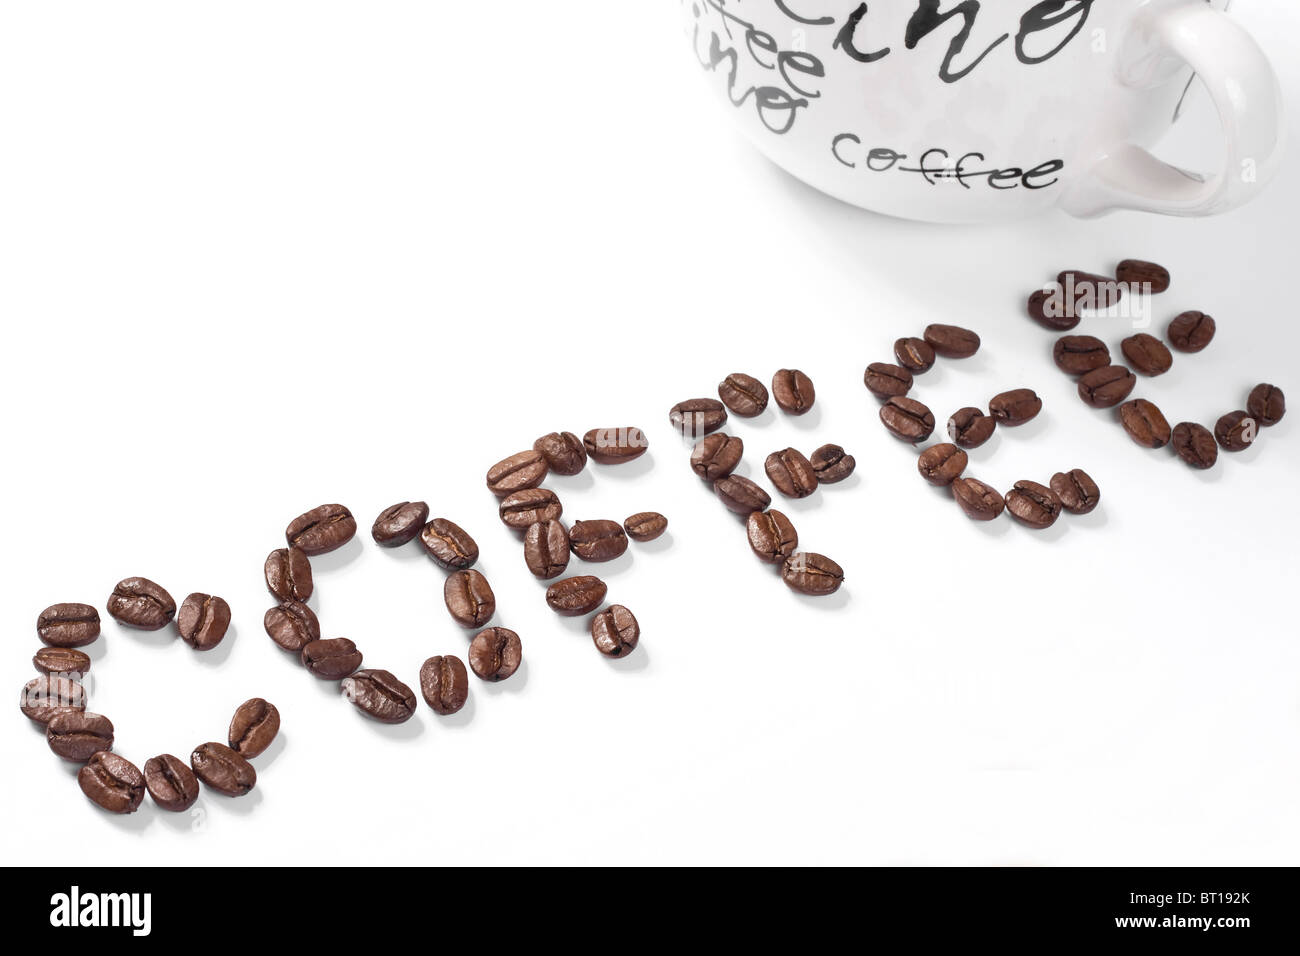 A cup of coffee and coffee beans Stock Photo